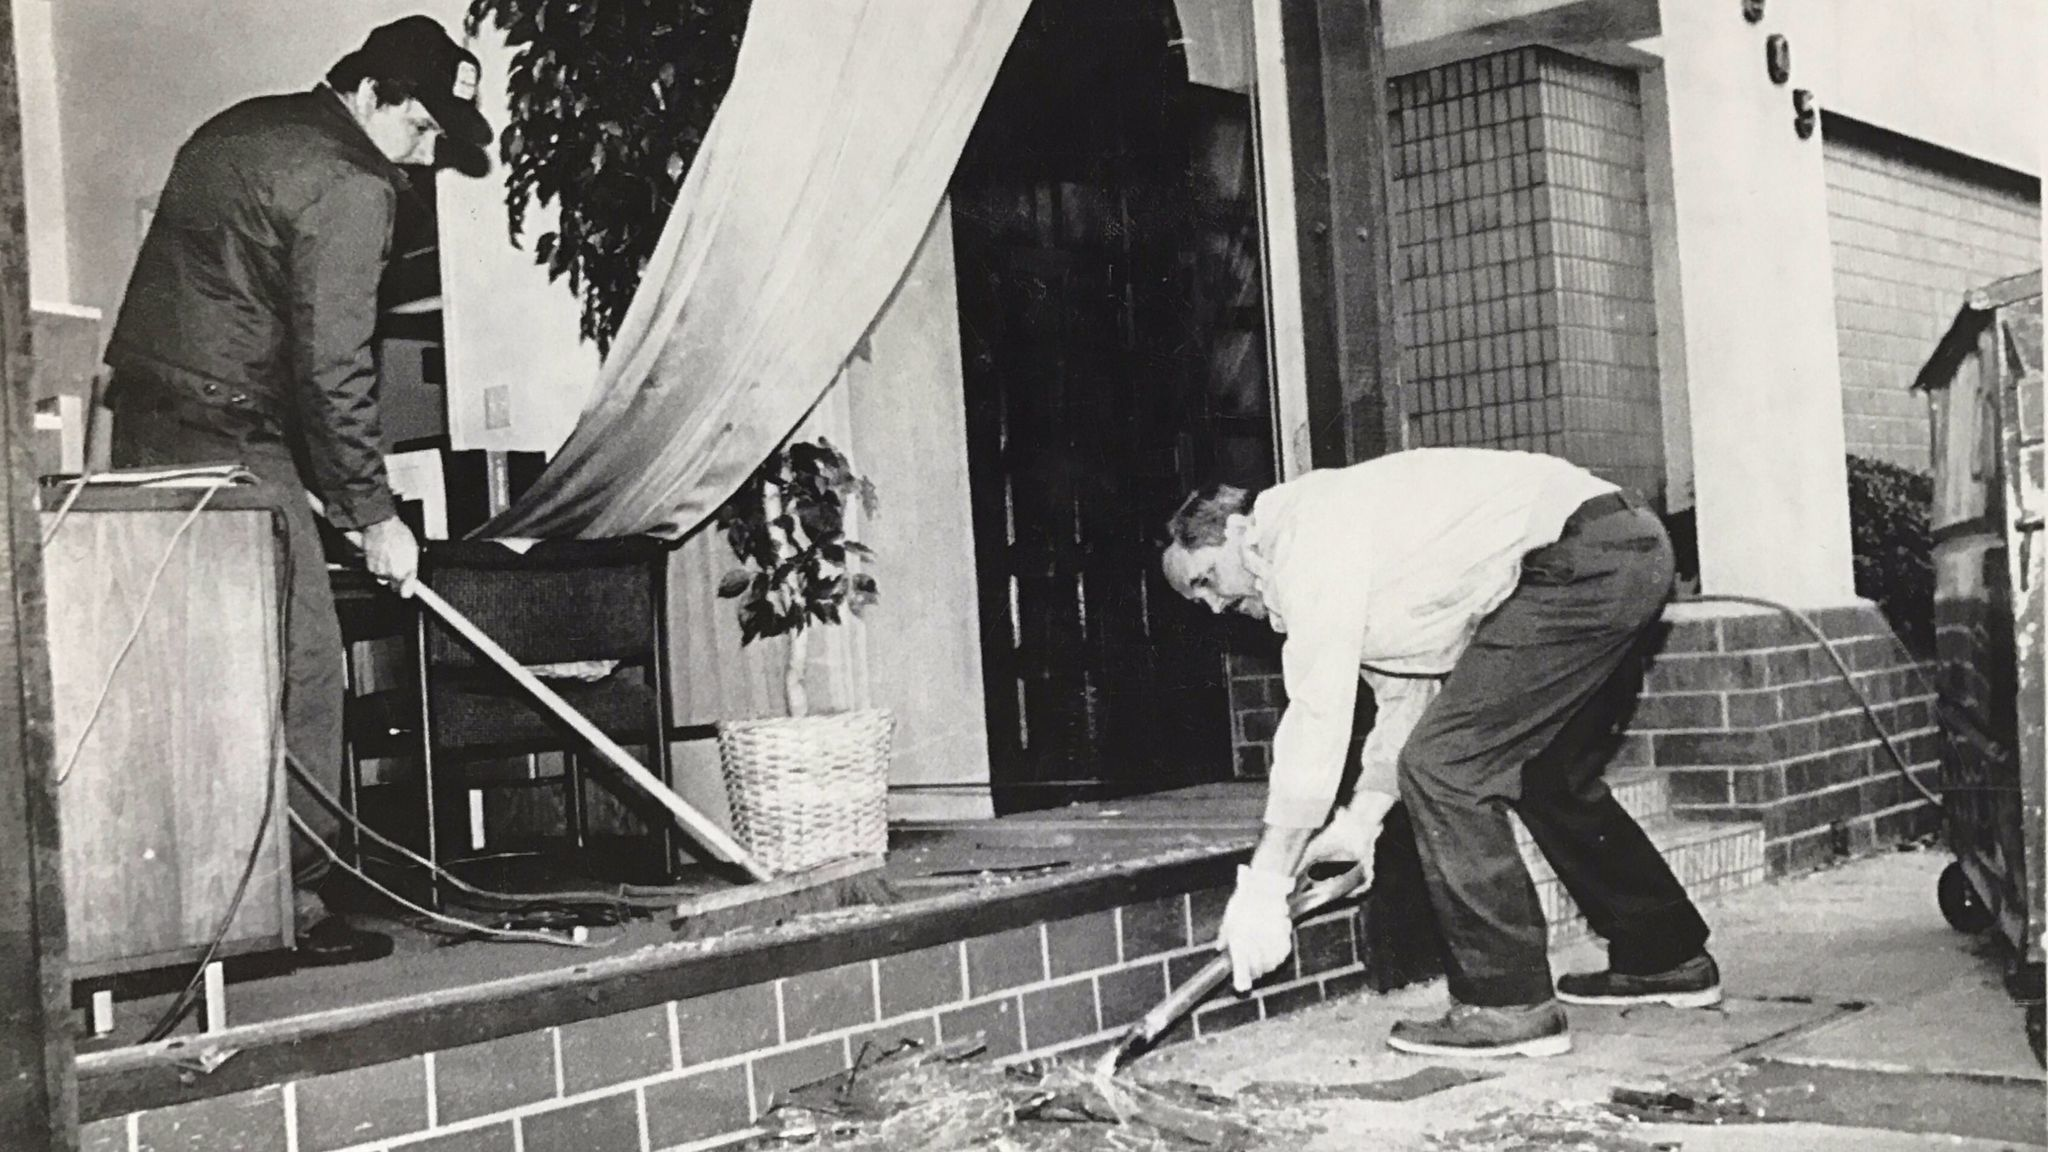 Ronald Cloutier shovels plate glass as Javier Surrano sweeps glass from offices of Diversified Maintenance Services after a 5.0 earthquake hit south Pasadena in 1988.